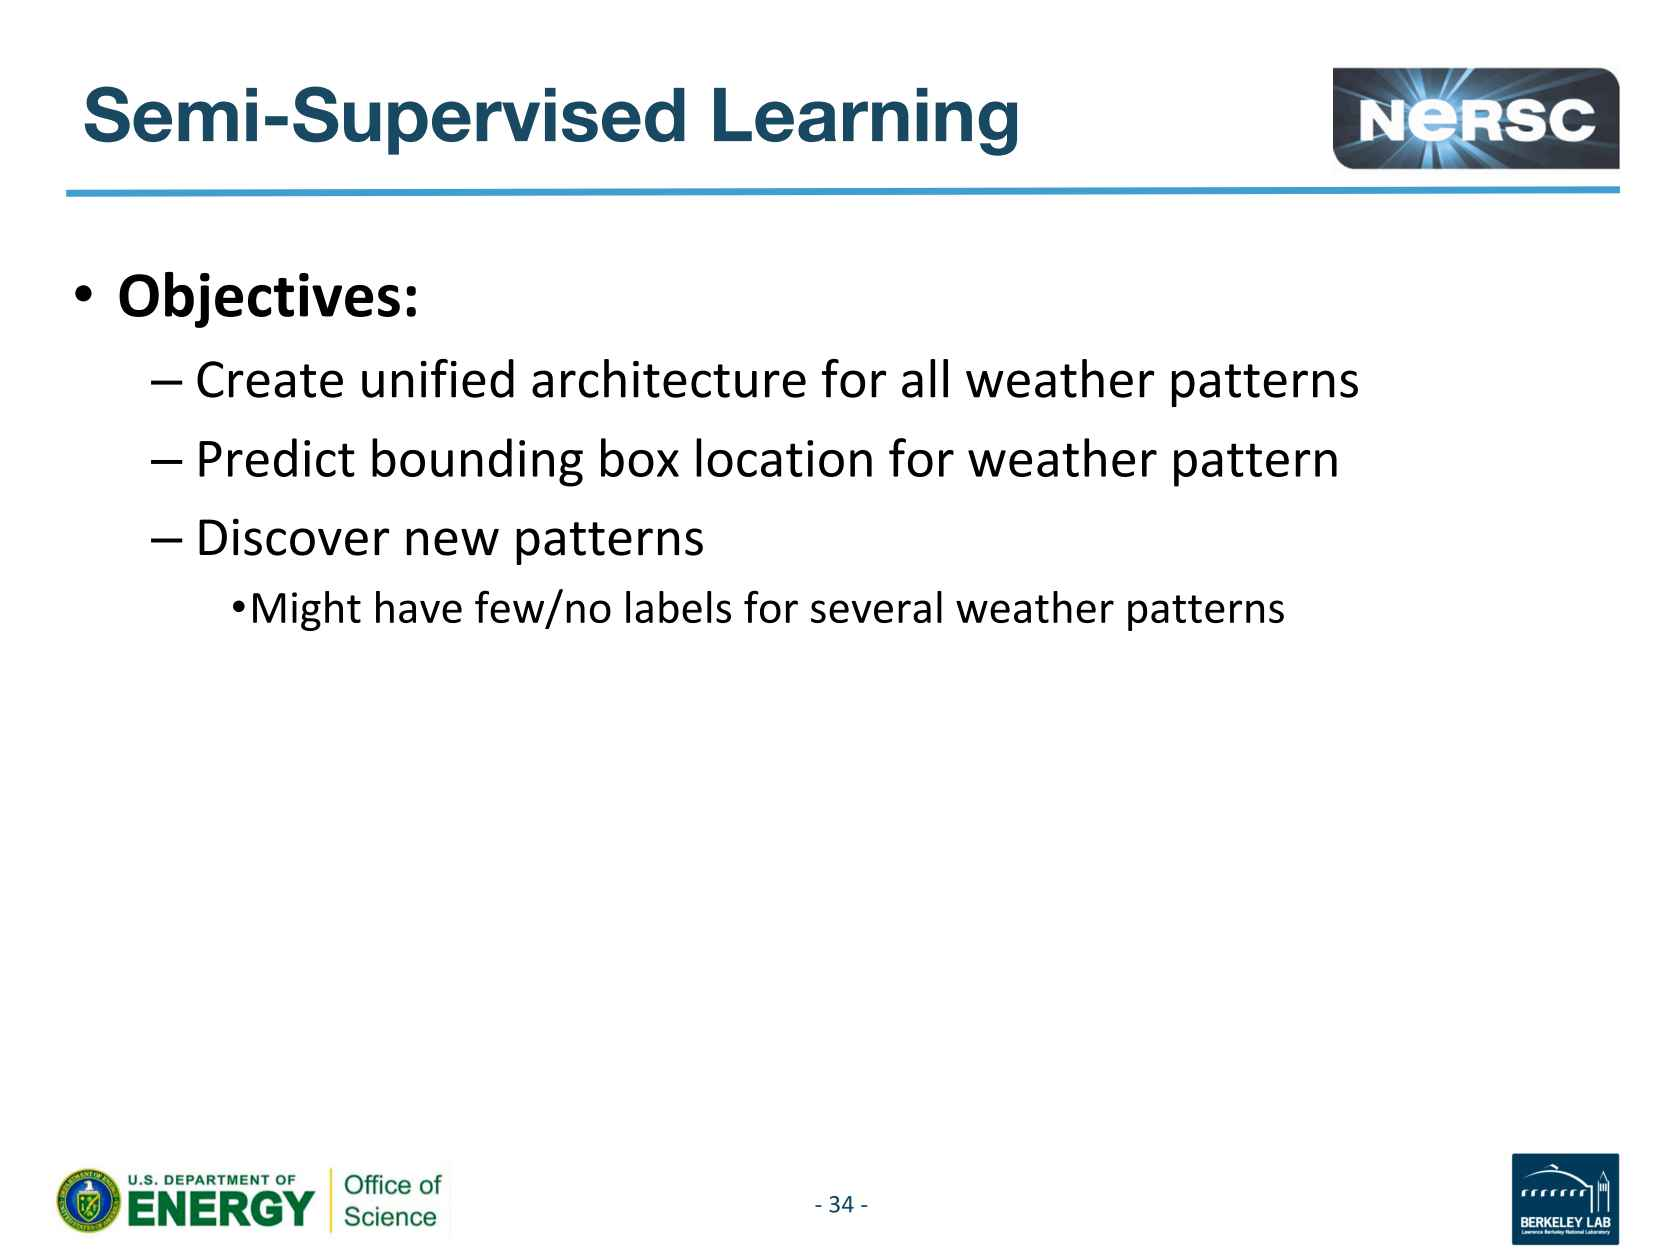 Semi-Supervised Deep Learning on Large Scale Climate Models